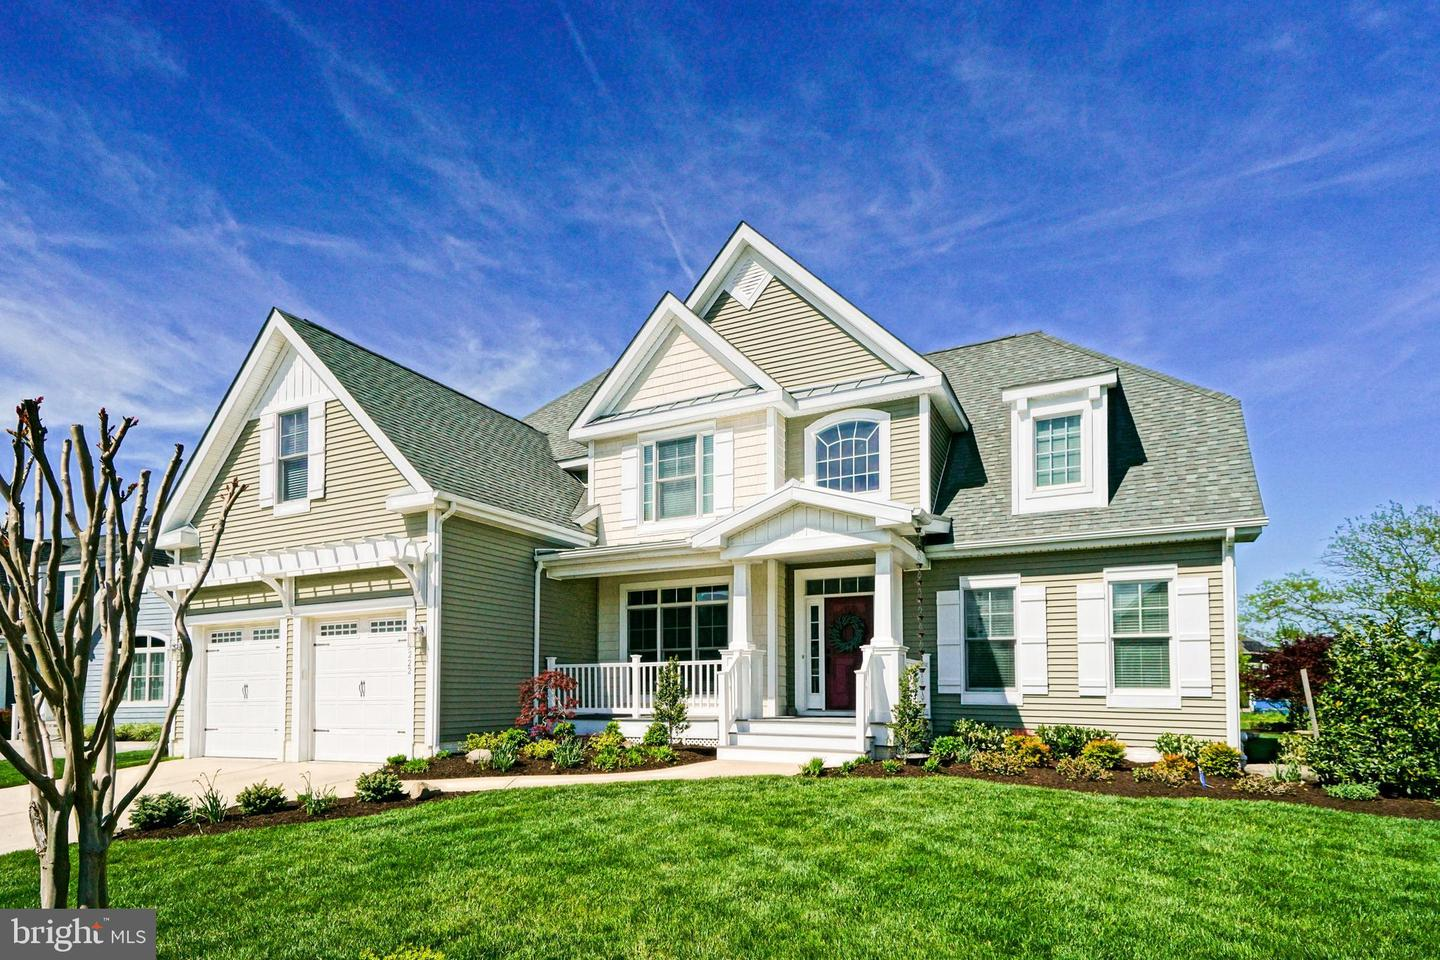 DESU139128-301667380885-2019-08-05-10-43-56 35222 Overfalls Dr N | Lewes, DE Real Estate For Sale | MLS# Desu139128  - Lee Ann Group